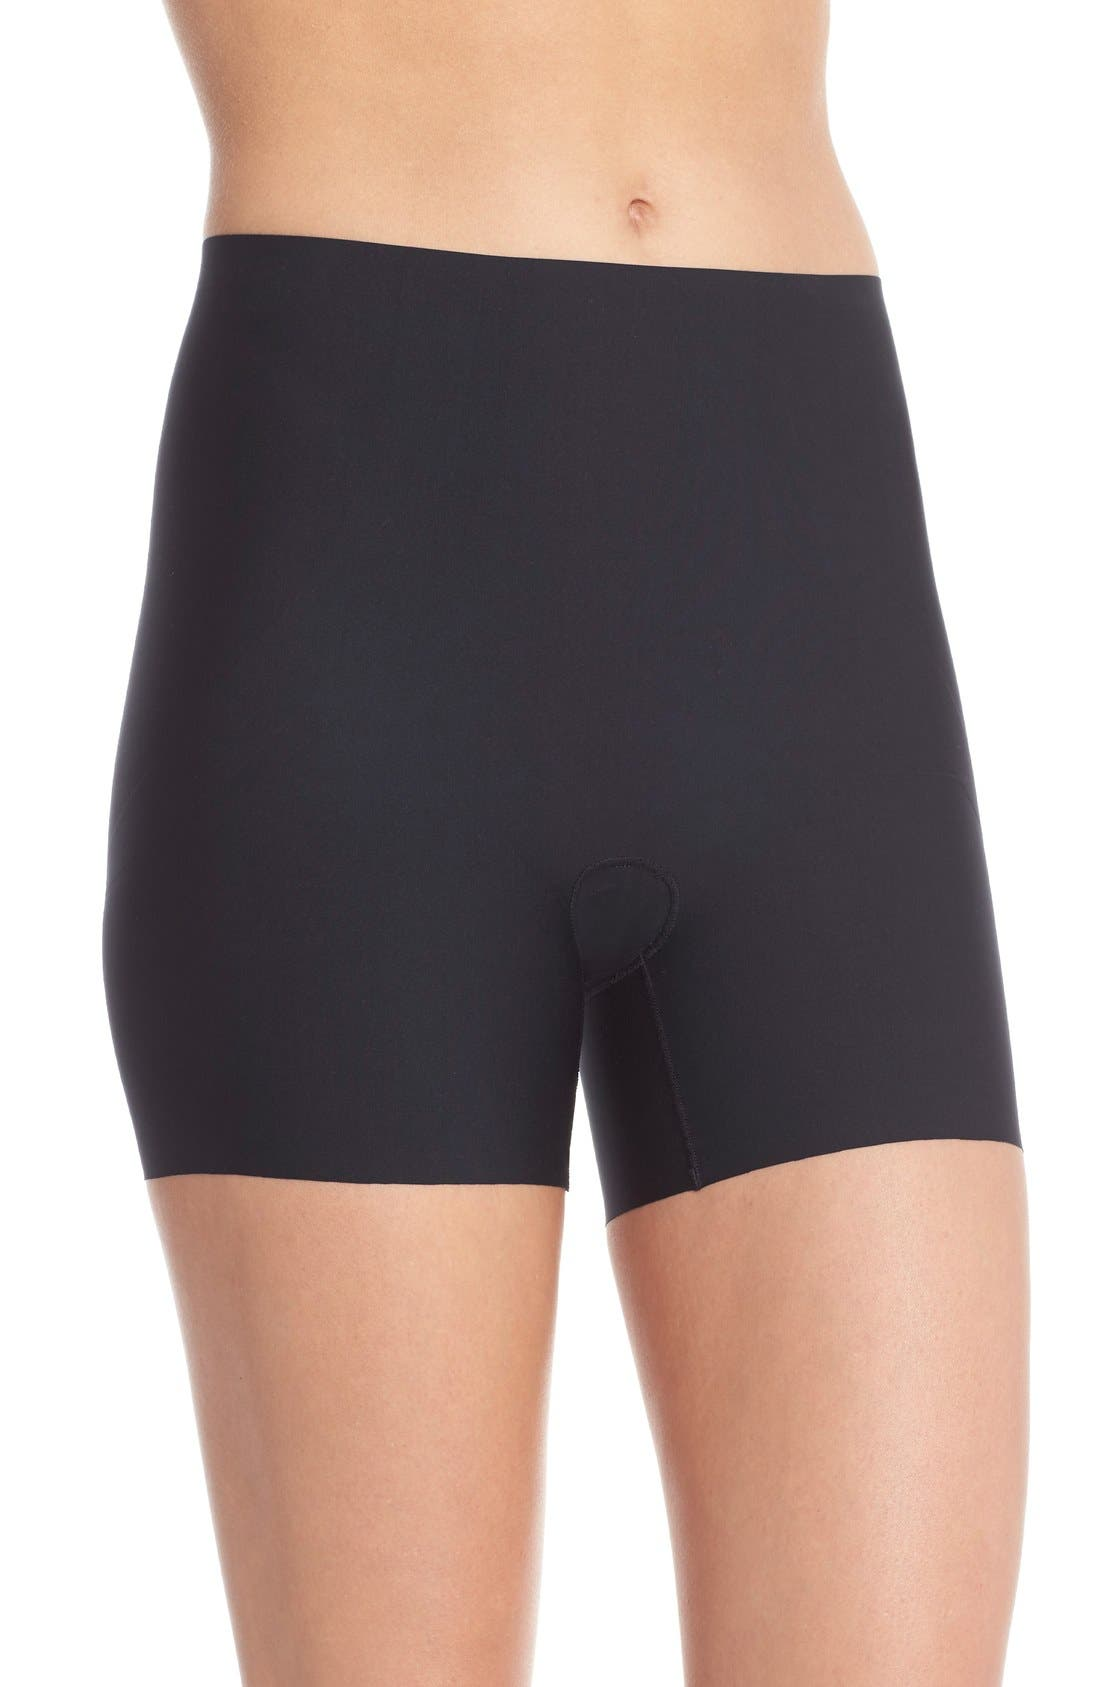 Thinstincts Girl Shorts,                         Main,                         color, VERY BLACK